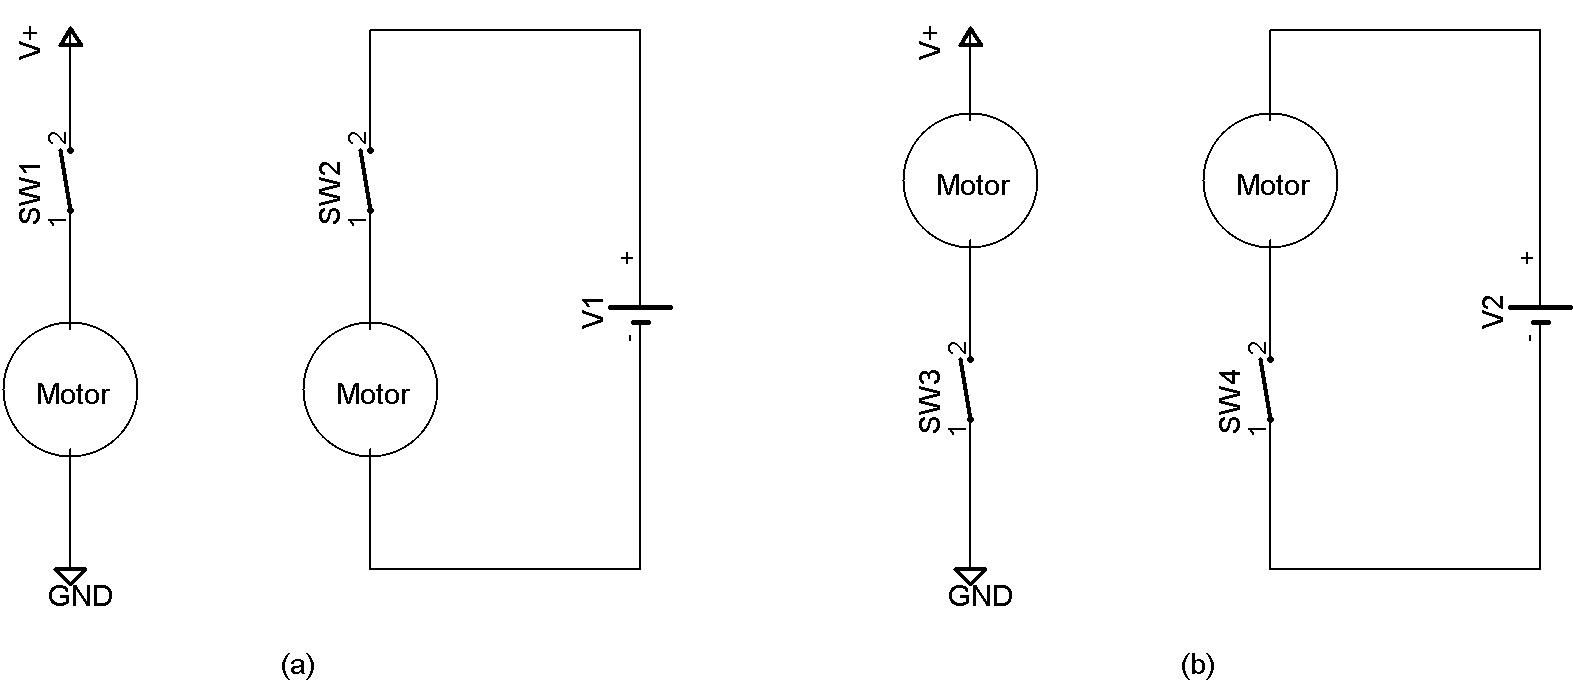 hand-switch-motor-driven.png